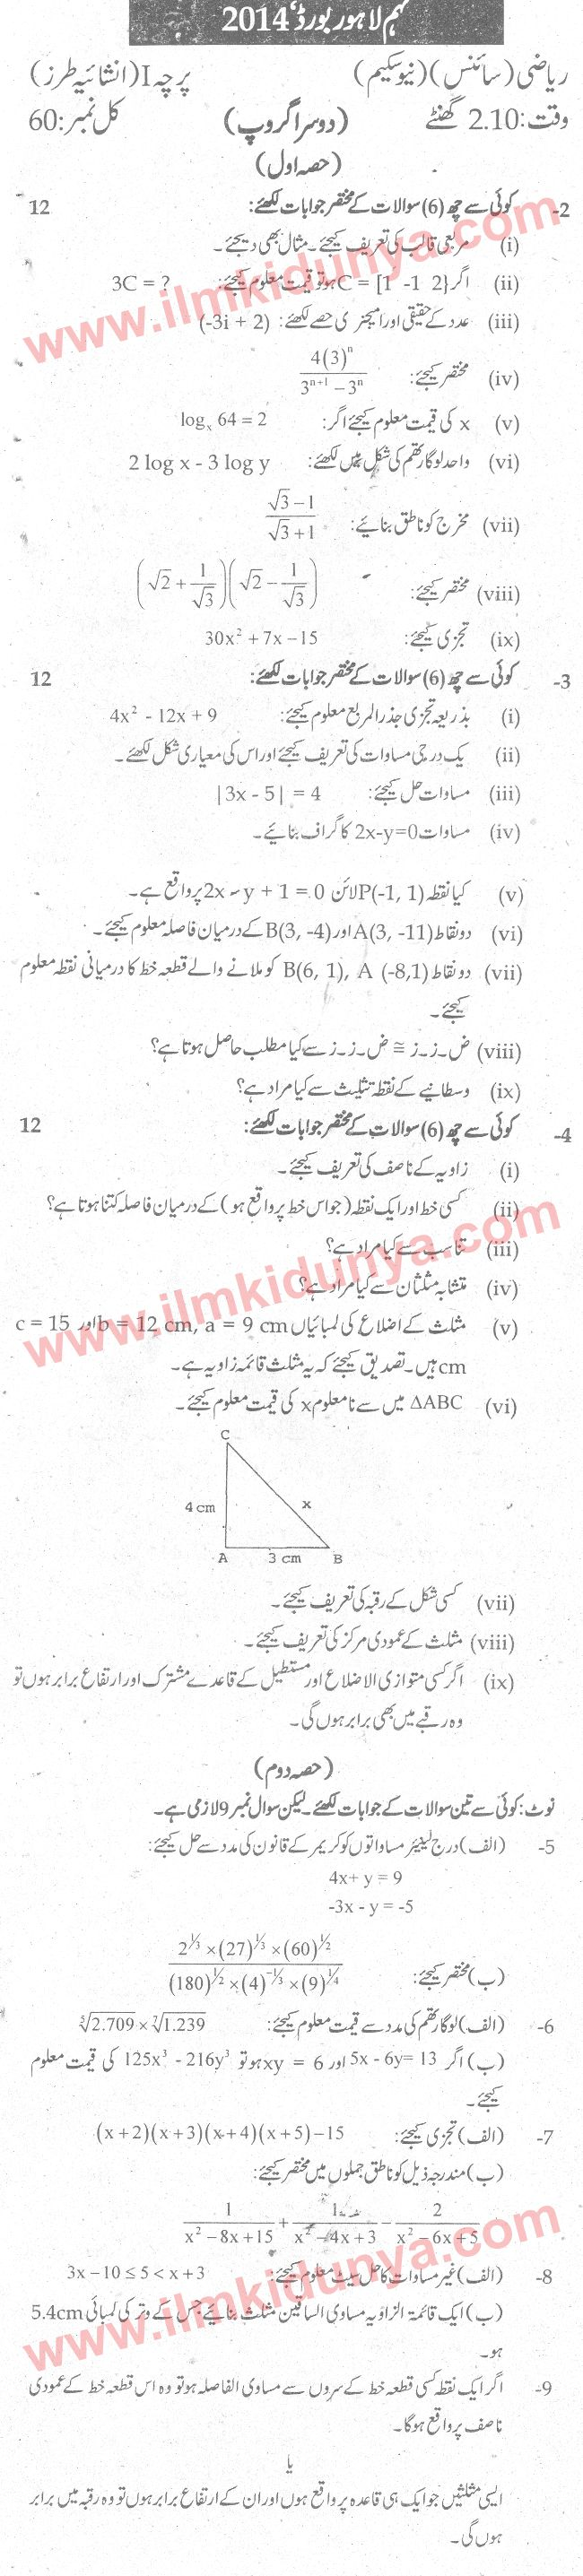 worksheet Math Paper past papers 2014 lahore board 9th class math subjective group 2